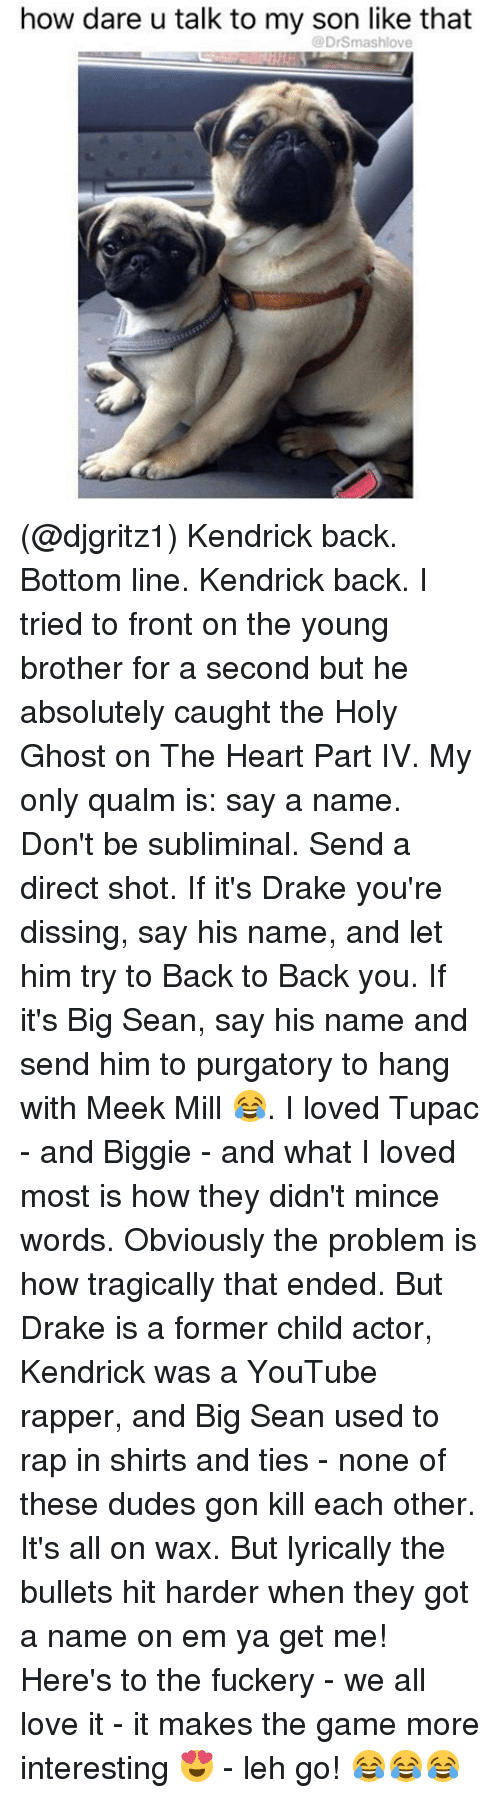 Back to Back, Big Sean, and Drake: how dare u talk to my son like that  @DrSmashlove (@djgritz1) Kendrick back. Bottom line. Kendrick back. I tried to front on the young brother for a second but he absolutely caught the Holy Ghost on The Heart Part IV. My only qualm is: say a name. Don't be subliminal. Send a direct shot. If it's Drake you're dissing, say his name, and let him try to Back to Back you. If it's Big Sean, say his name and send him to purgatory to hang with Meek Mill 😂. I loved Tupac - and Biggie - and what I loved most is how they didn't mince words. Obviously the problem is how tragically that ended. But Drake is a former child actor, Kendrick was a YouTube rapper, and Big Sean used to rap in shirts and ties - none of these dudes gon kill each other. It's all on wax. But lyrically the bullets hit harder when they got a name on em ya get me! Here's to the fuckery - we all love it - it makes the game more interesting 😍 - leh go! 😂😂😂